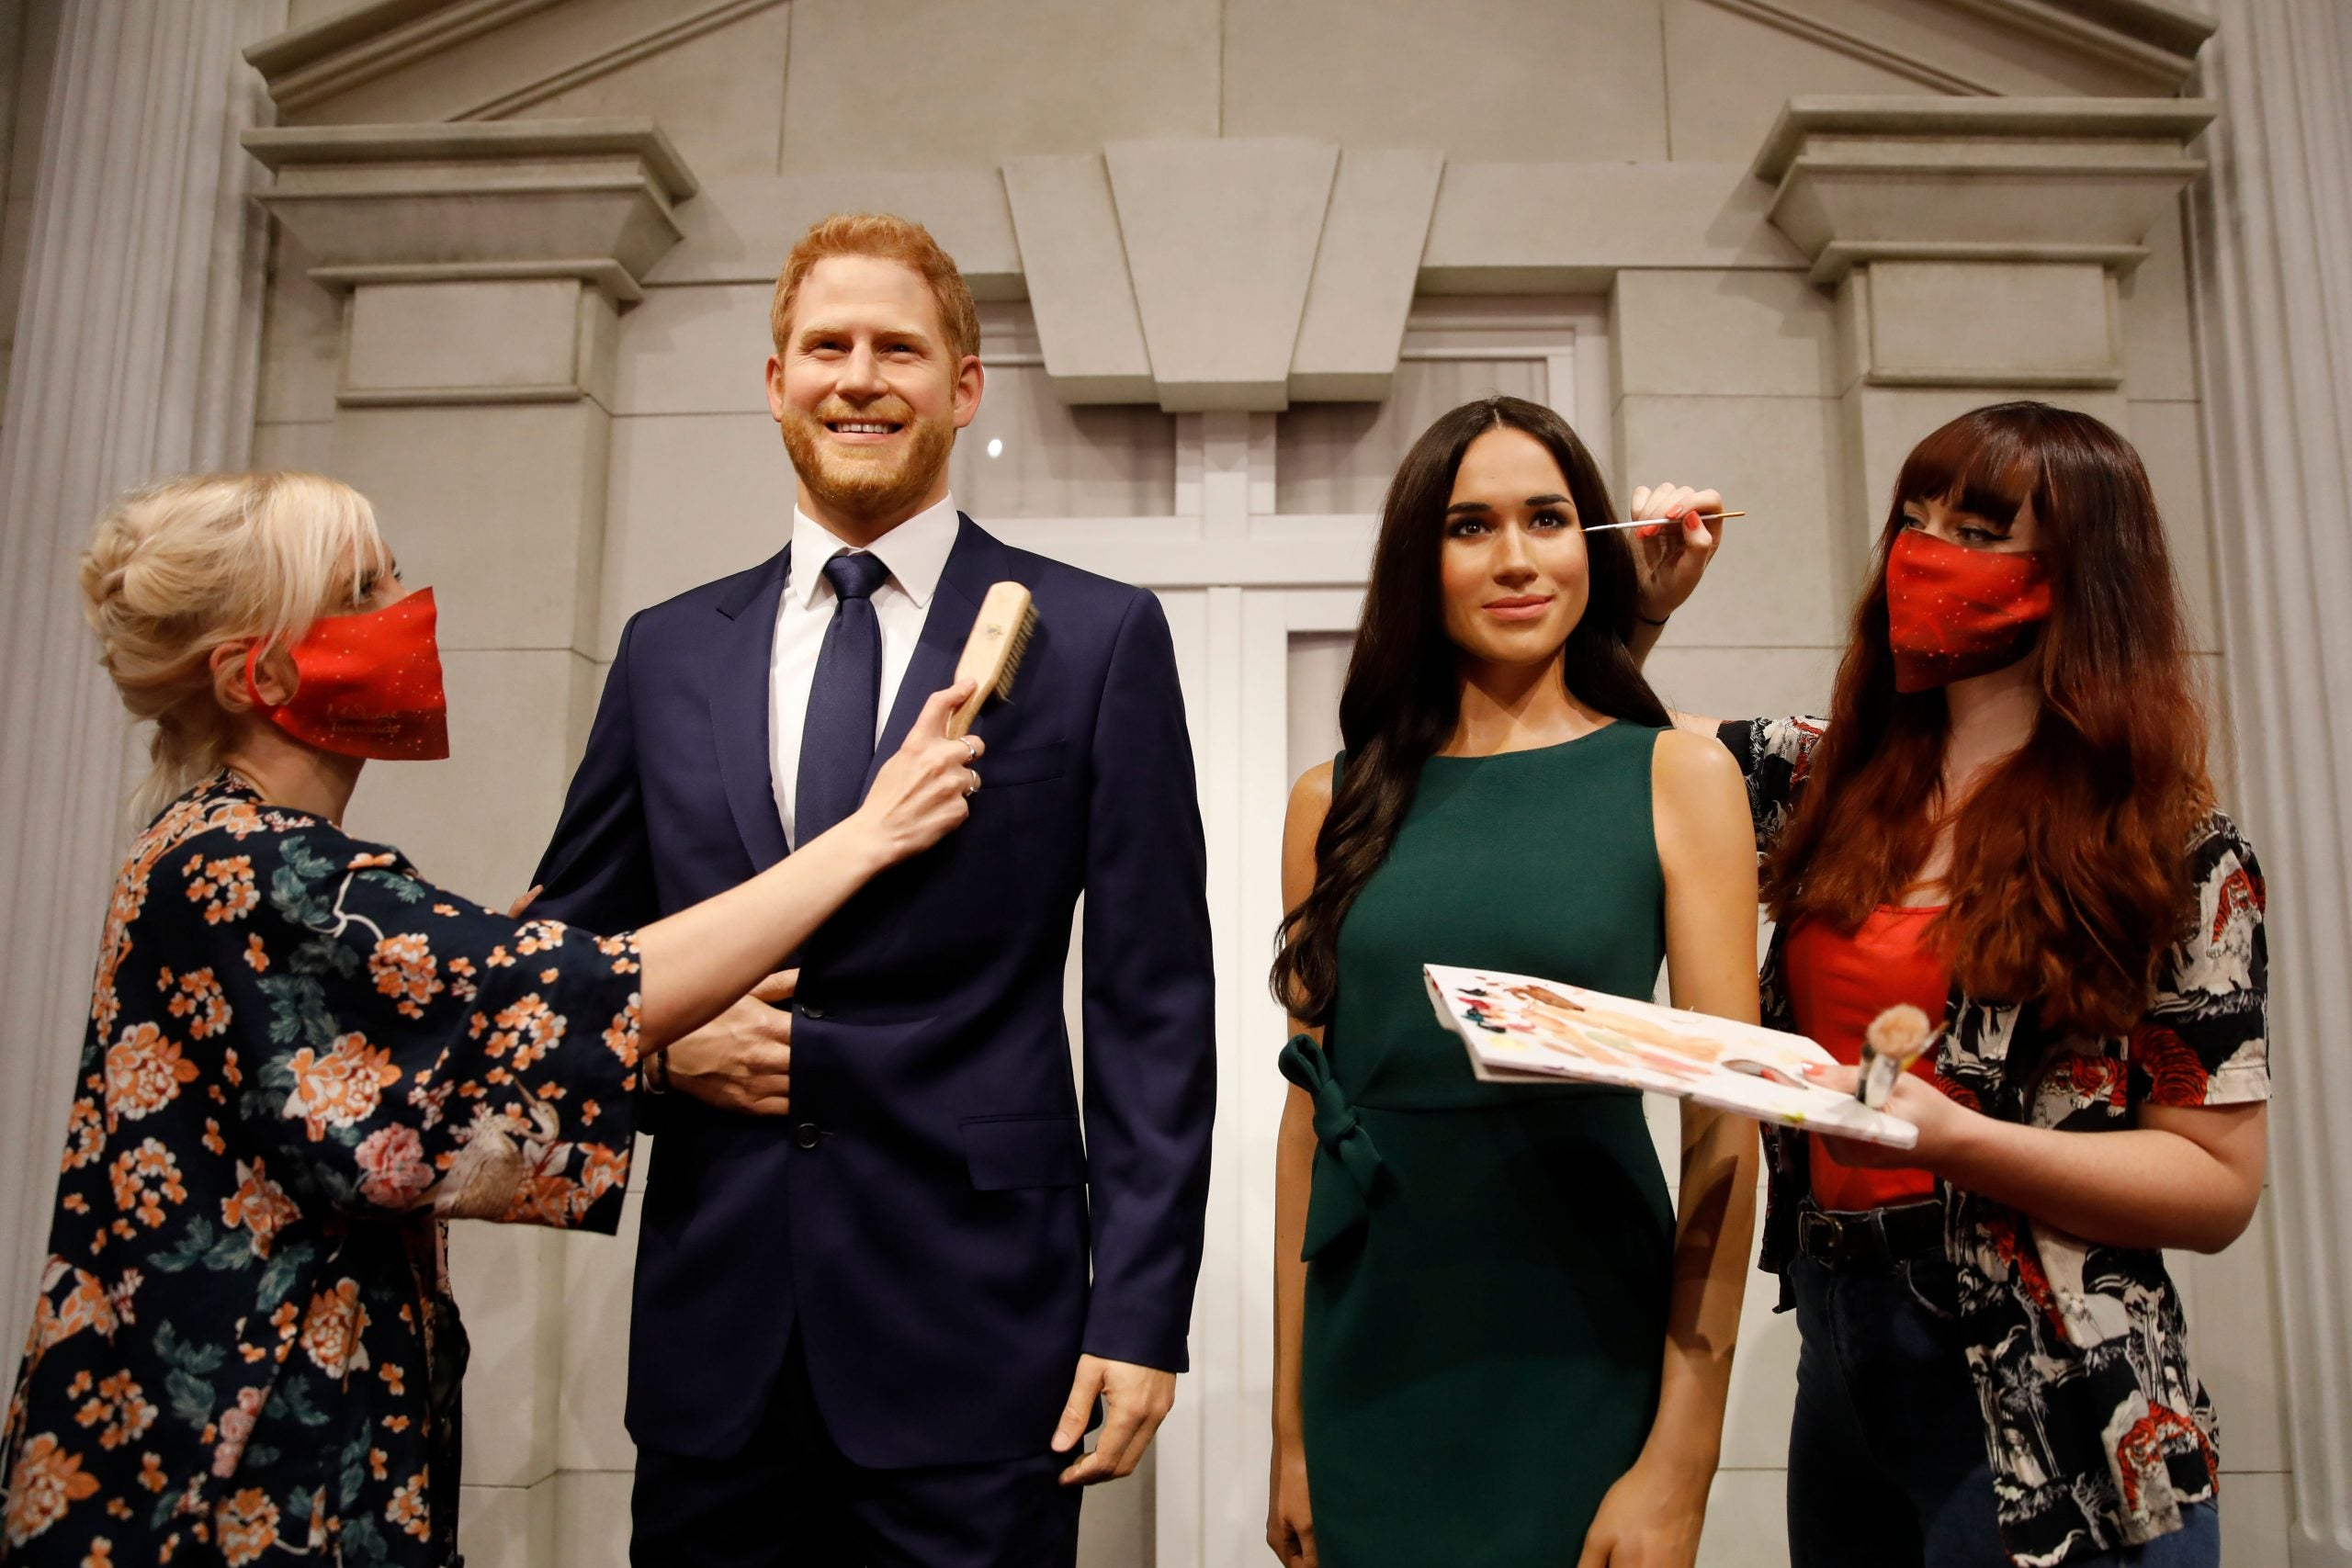 Harry and Meghan: the hollow claims of superstar activism